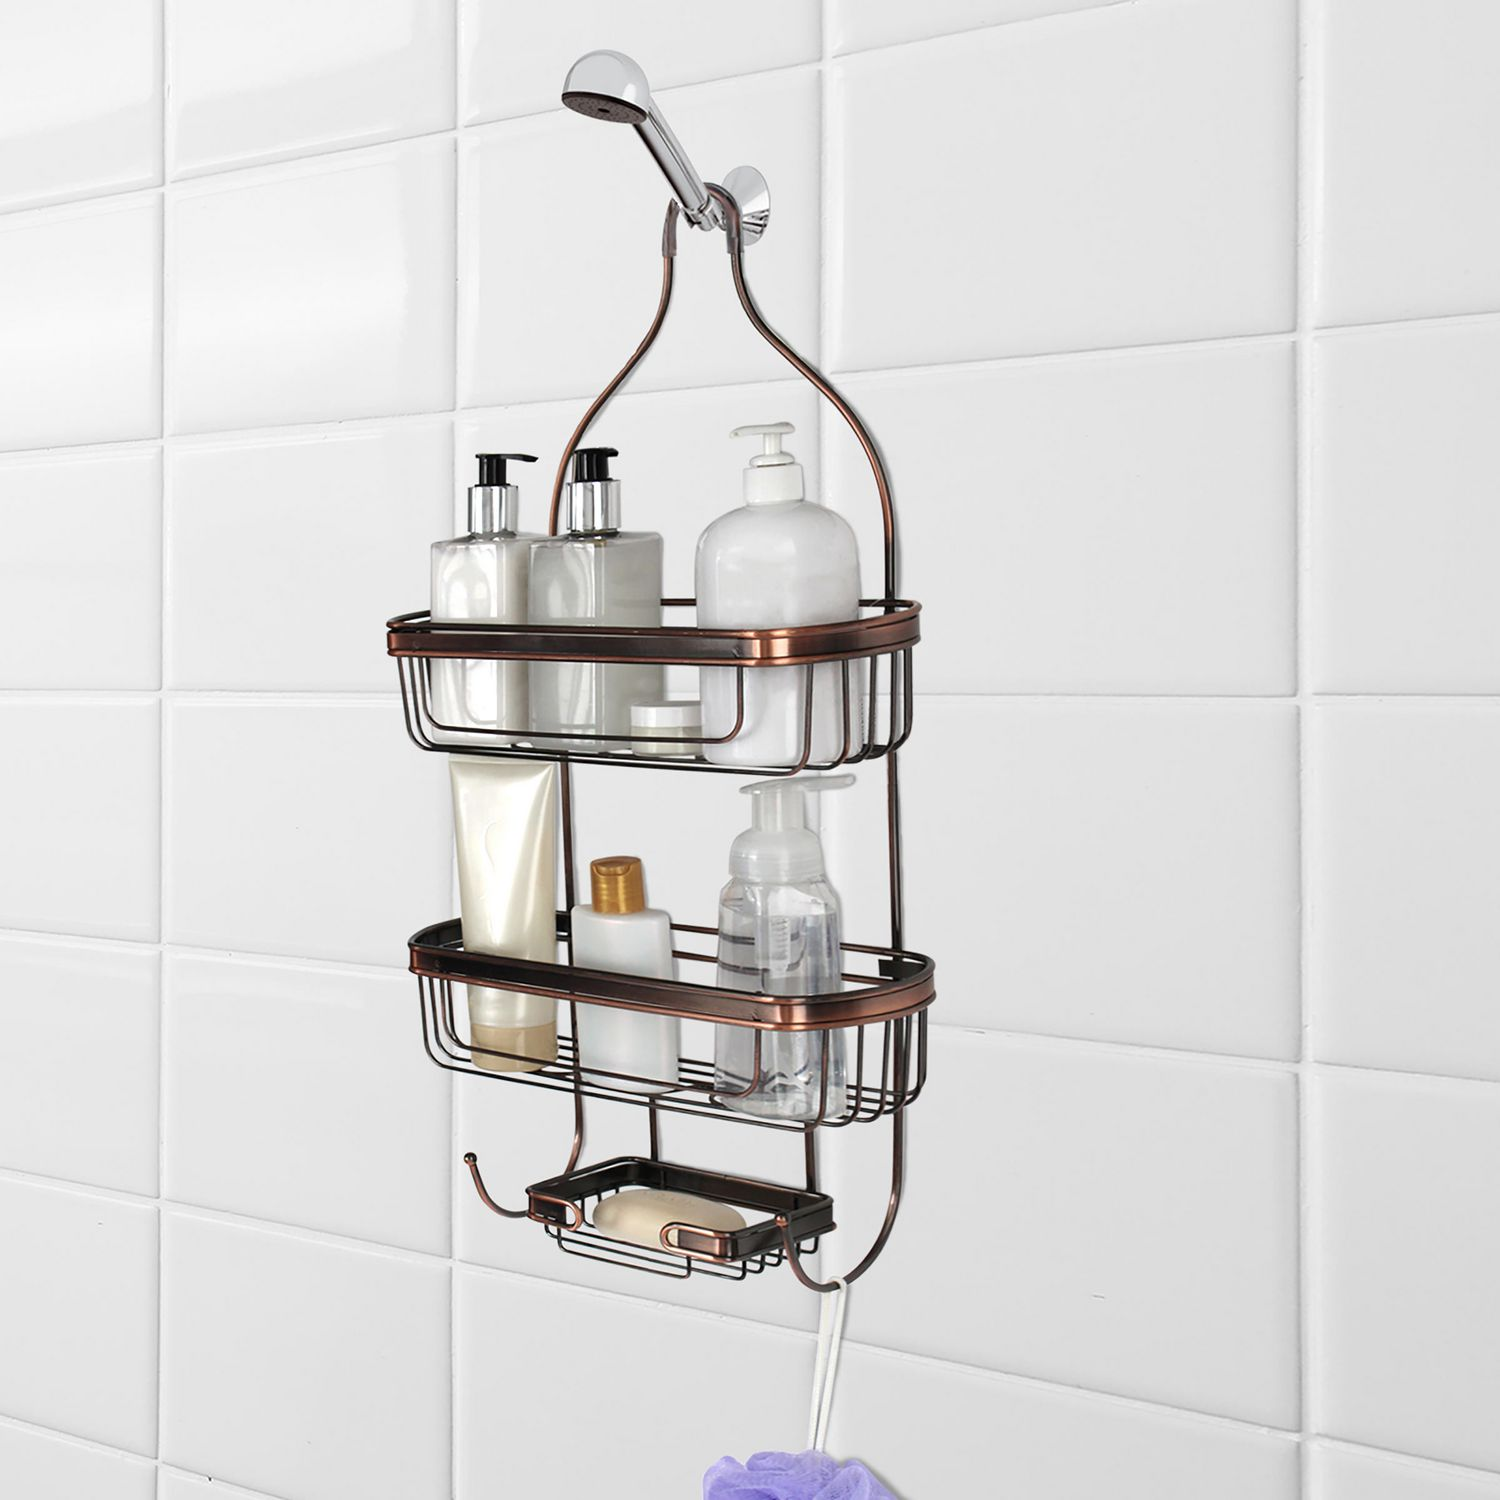 Splash Home Shower Caddy Storage Shelves For Shampoo Conditioner And Soap Oil Rubbed Bronze